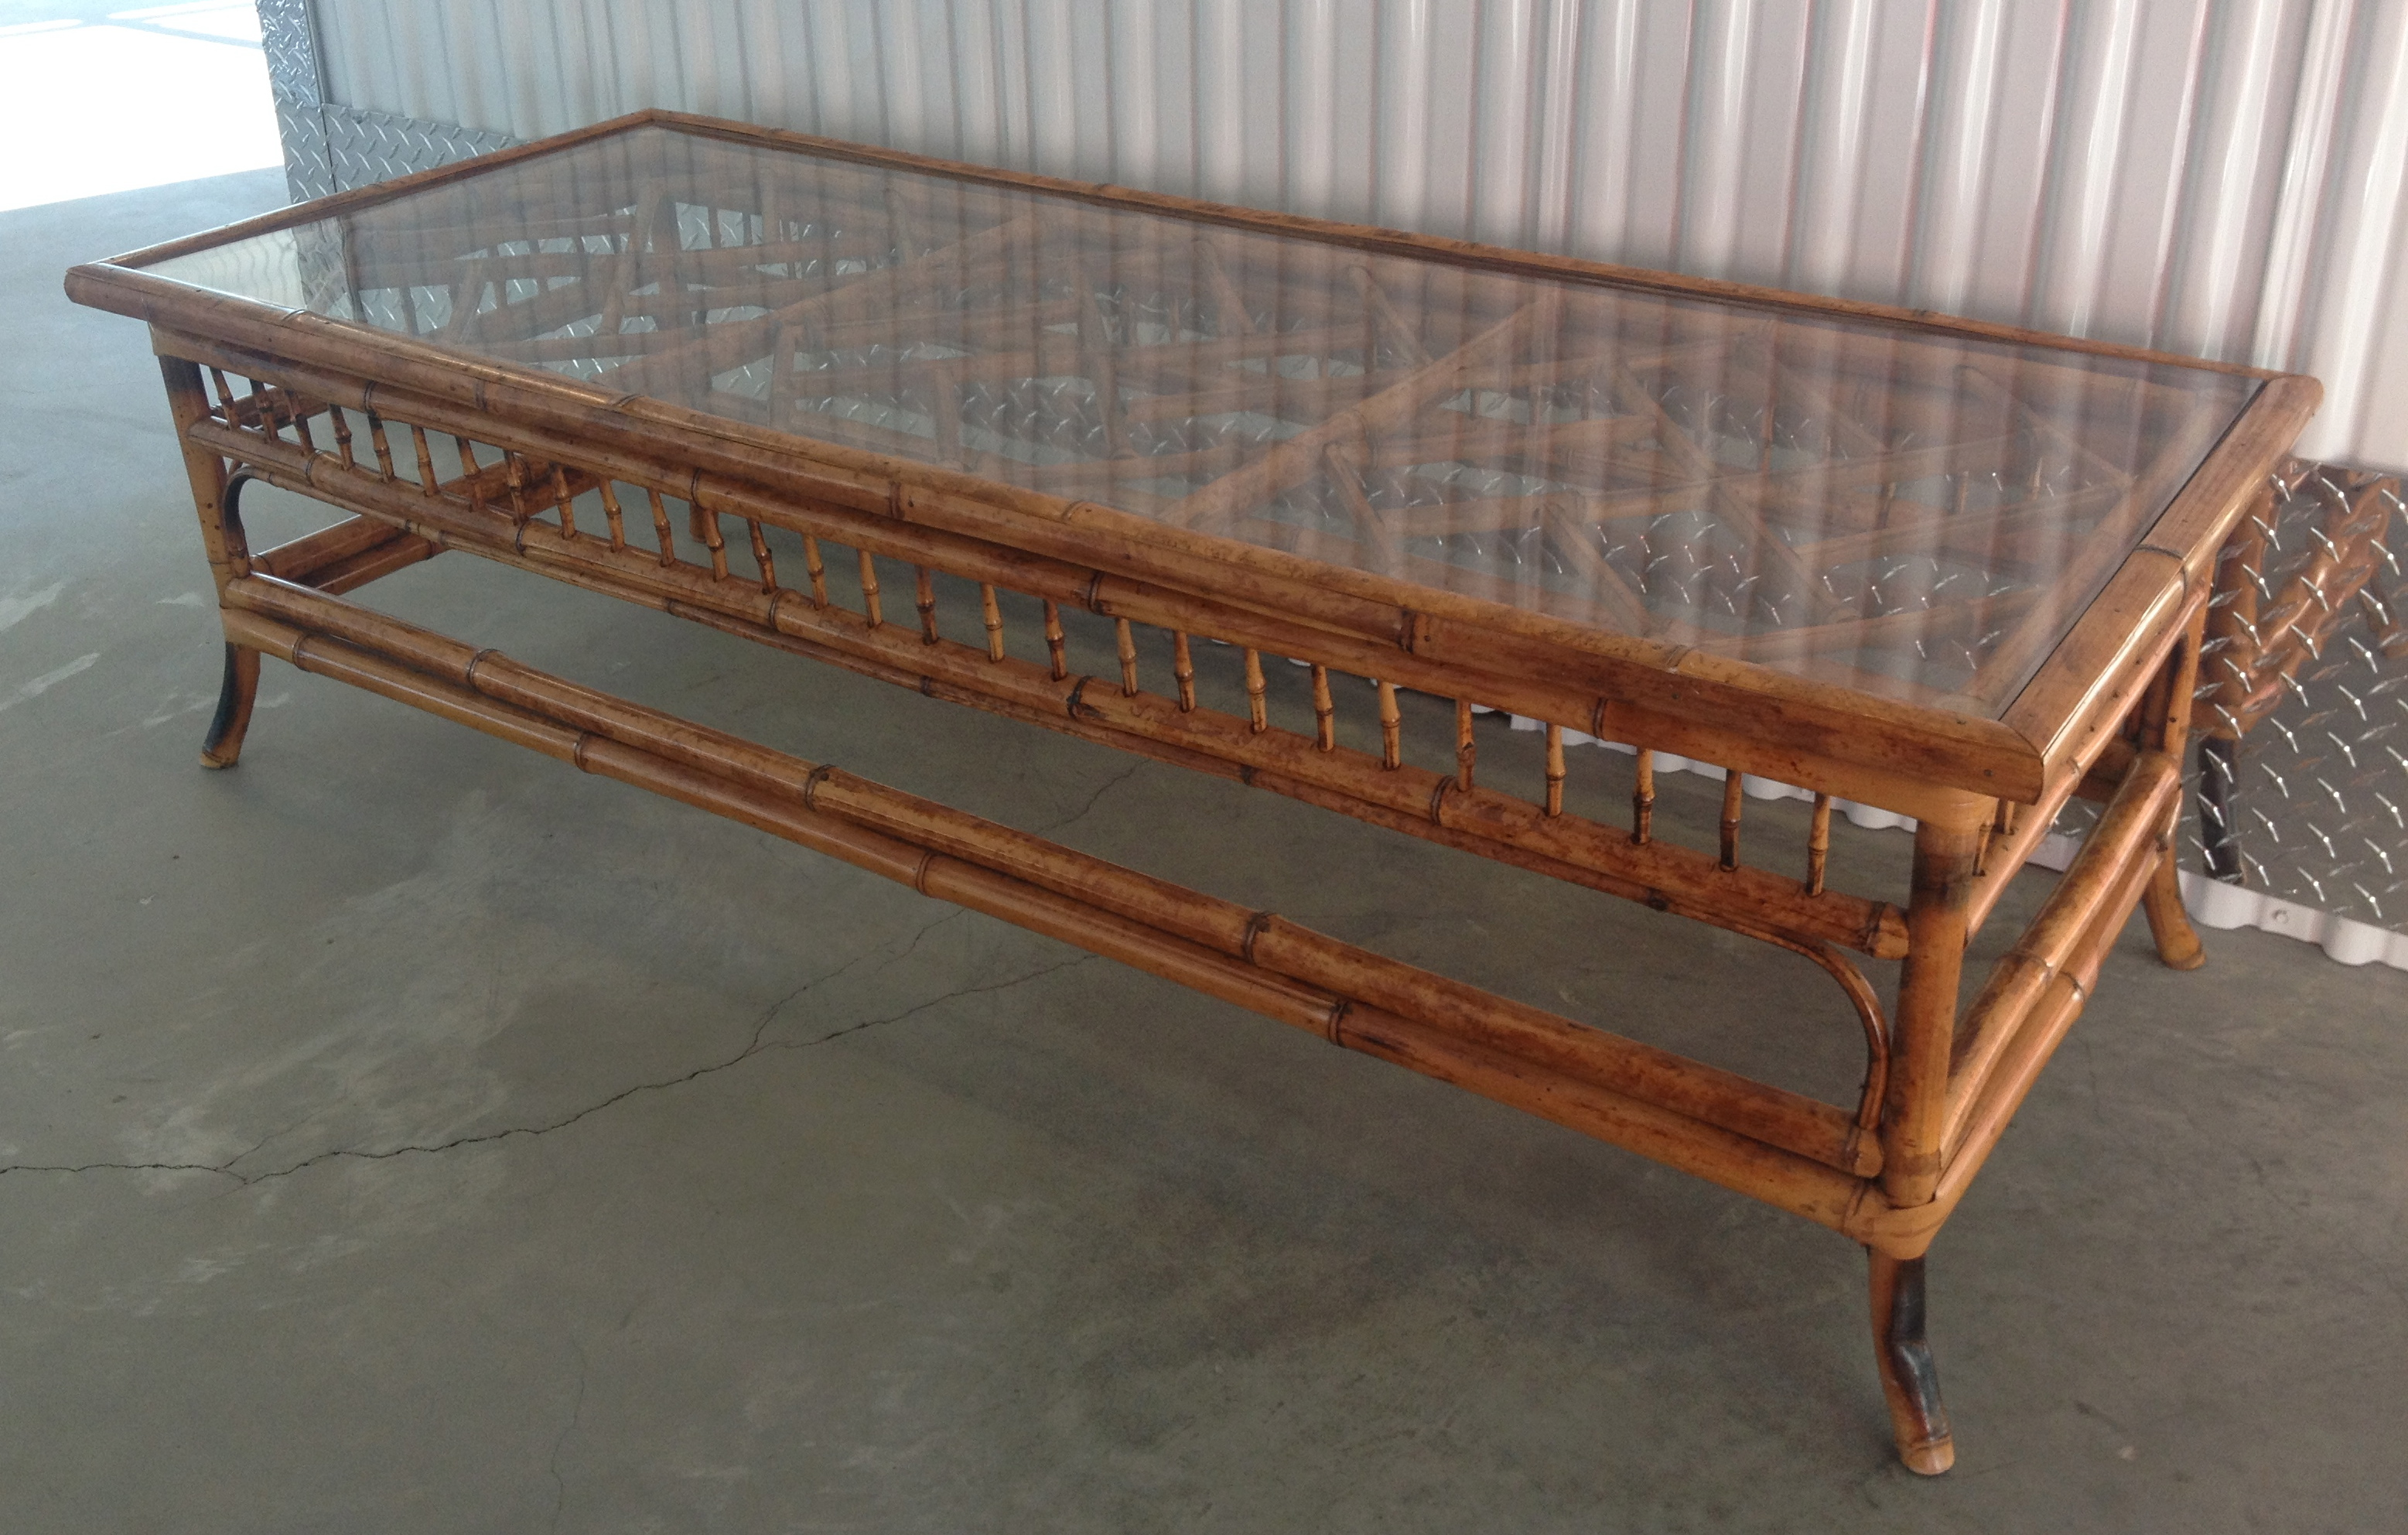 Bamboo Glass Coffee Table Wooden Furniture Made By Compressure Molding Was Founded In 1983 With The Aim Of Increasing The Interest For This Technique (View 10 of 10)